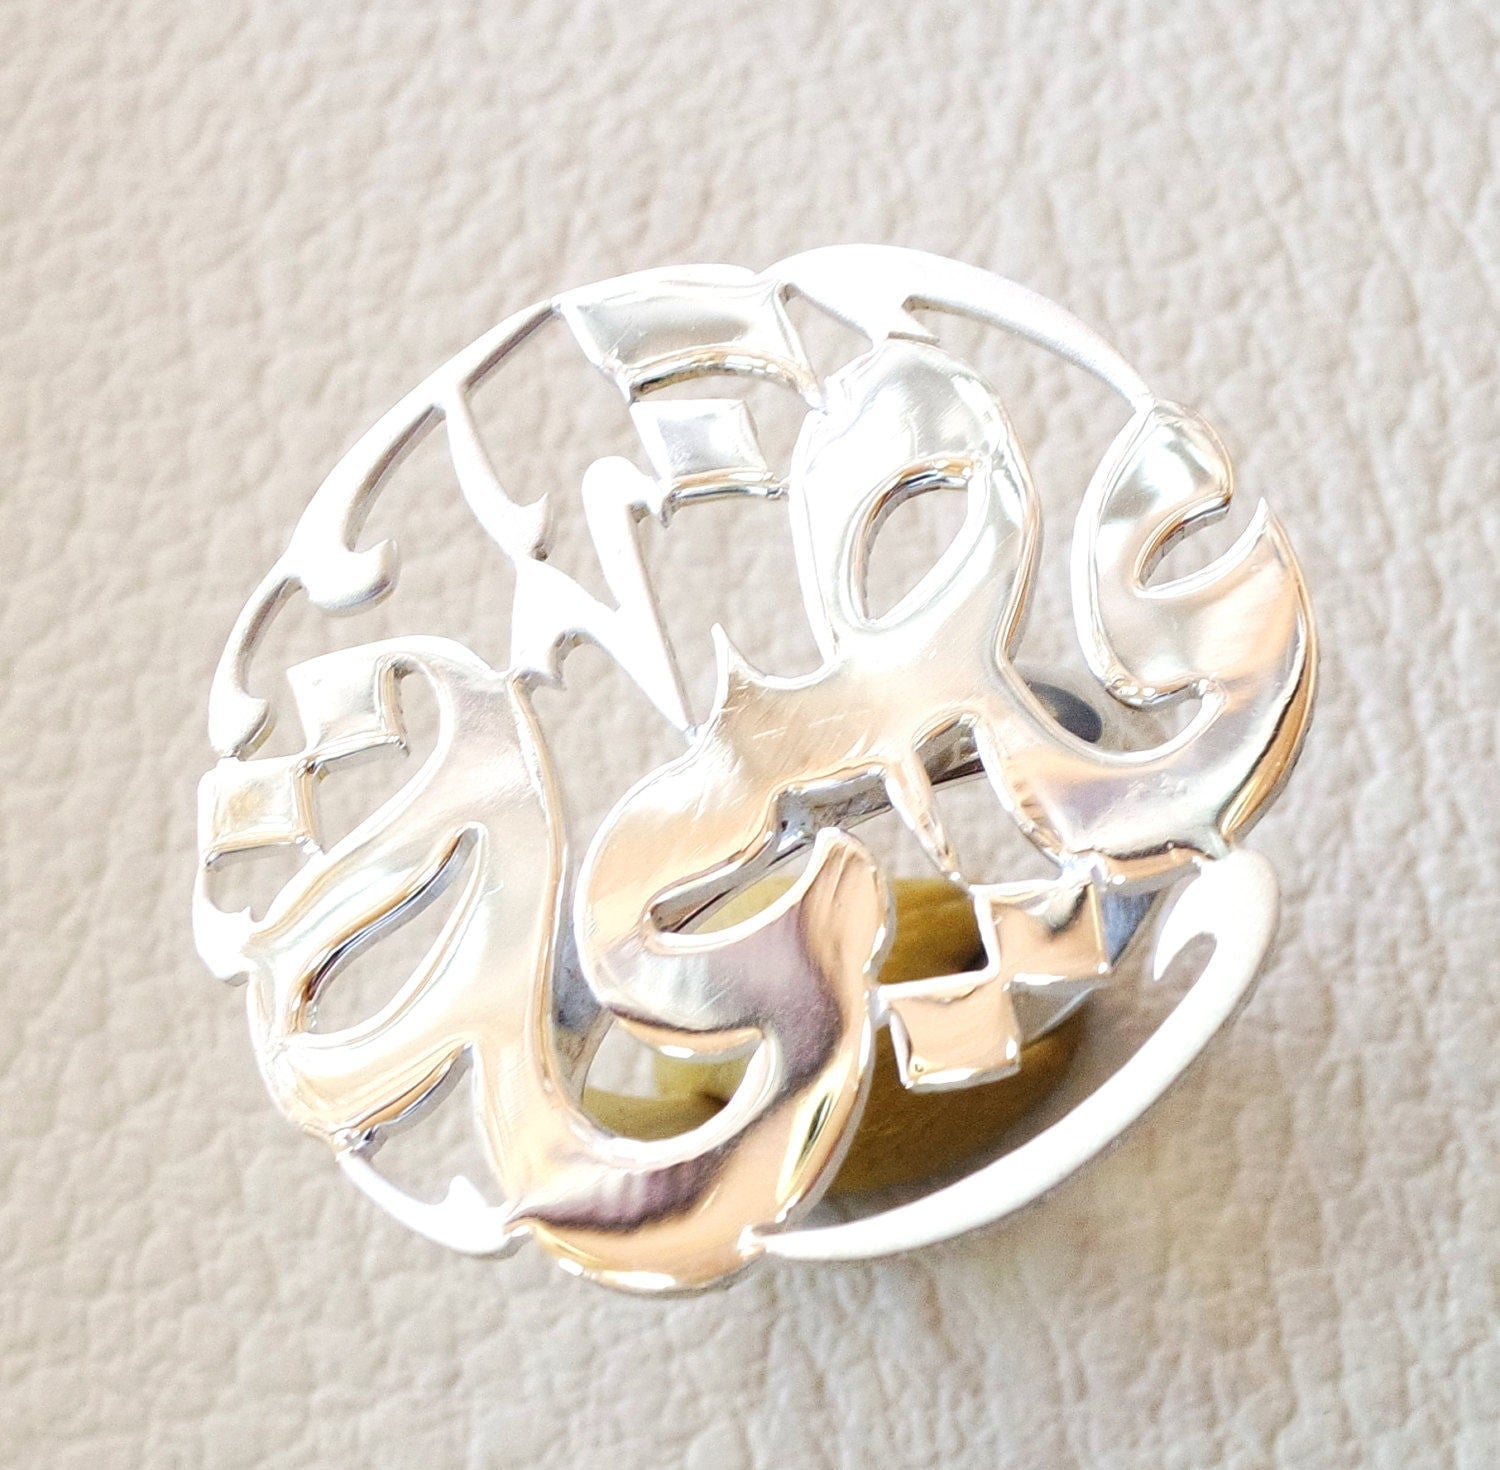 arabic calligraphy customized name sterling silver 925 high quality polishing ring round shape , fit all sizes any name خاتم اسماء عربي